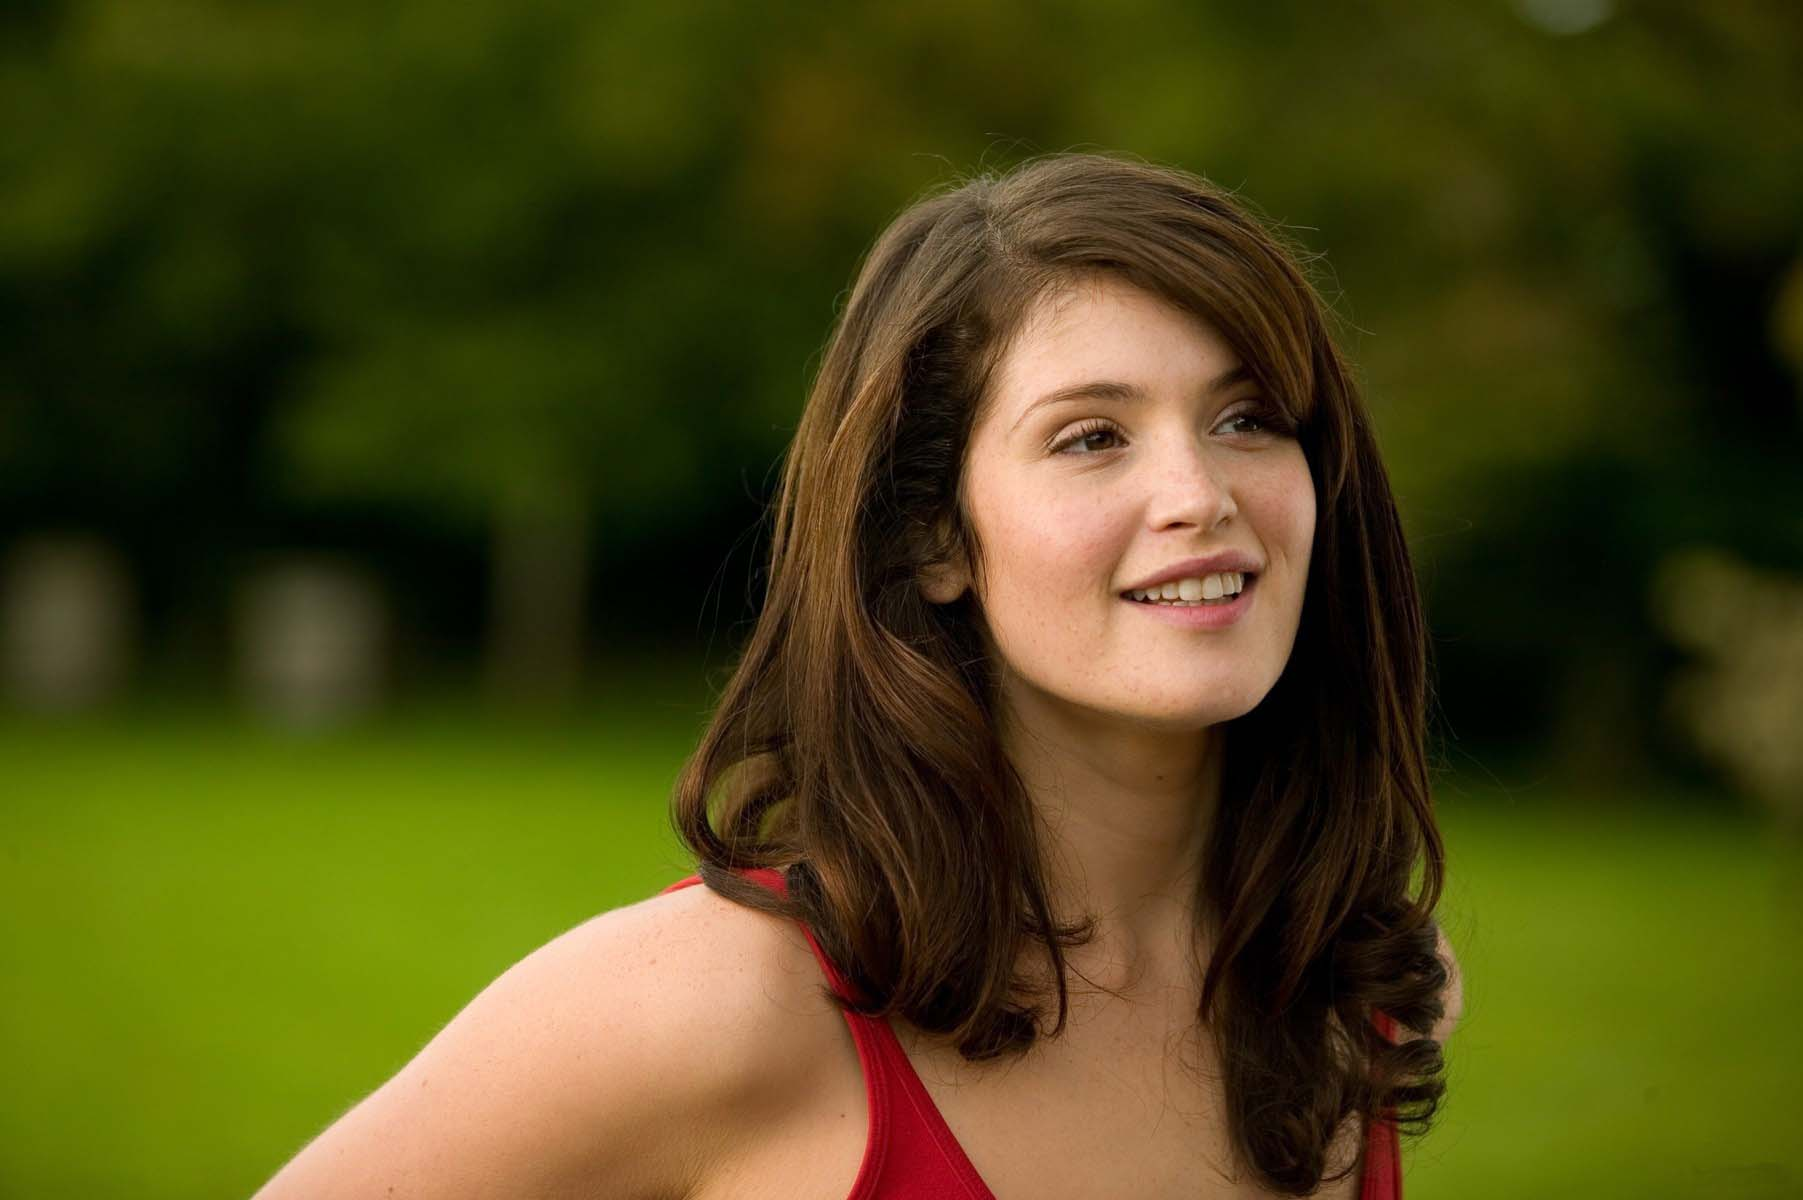 gemma arterton widescreen wallpaper - photo #30